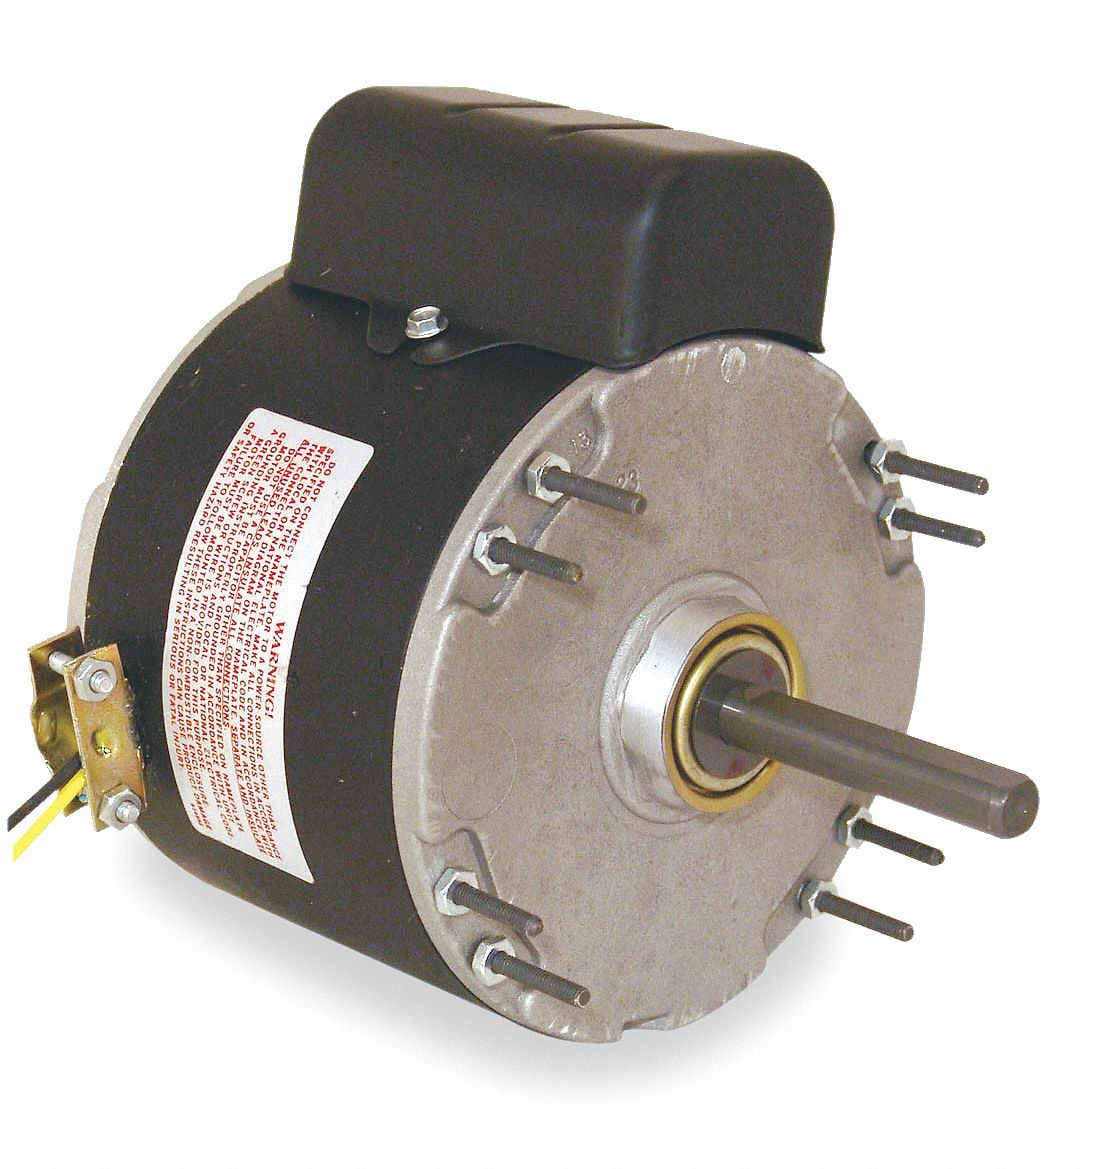 HVAC Motors - Motors - Grainger Industrial Supply on